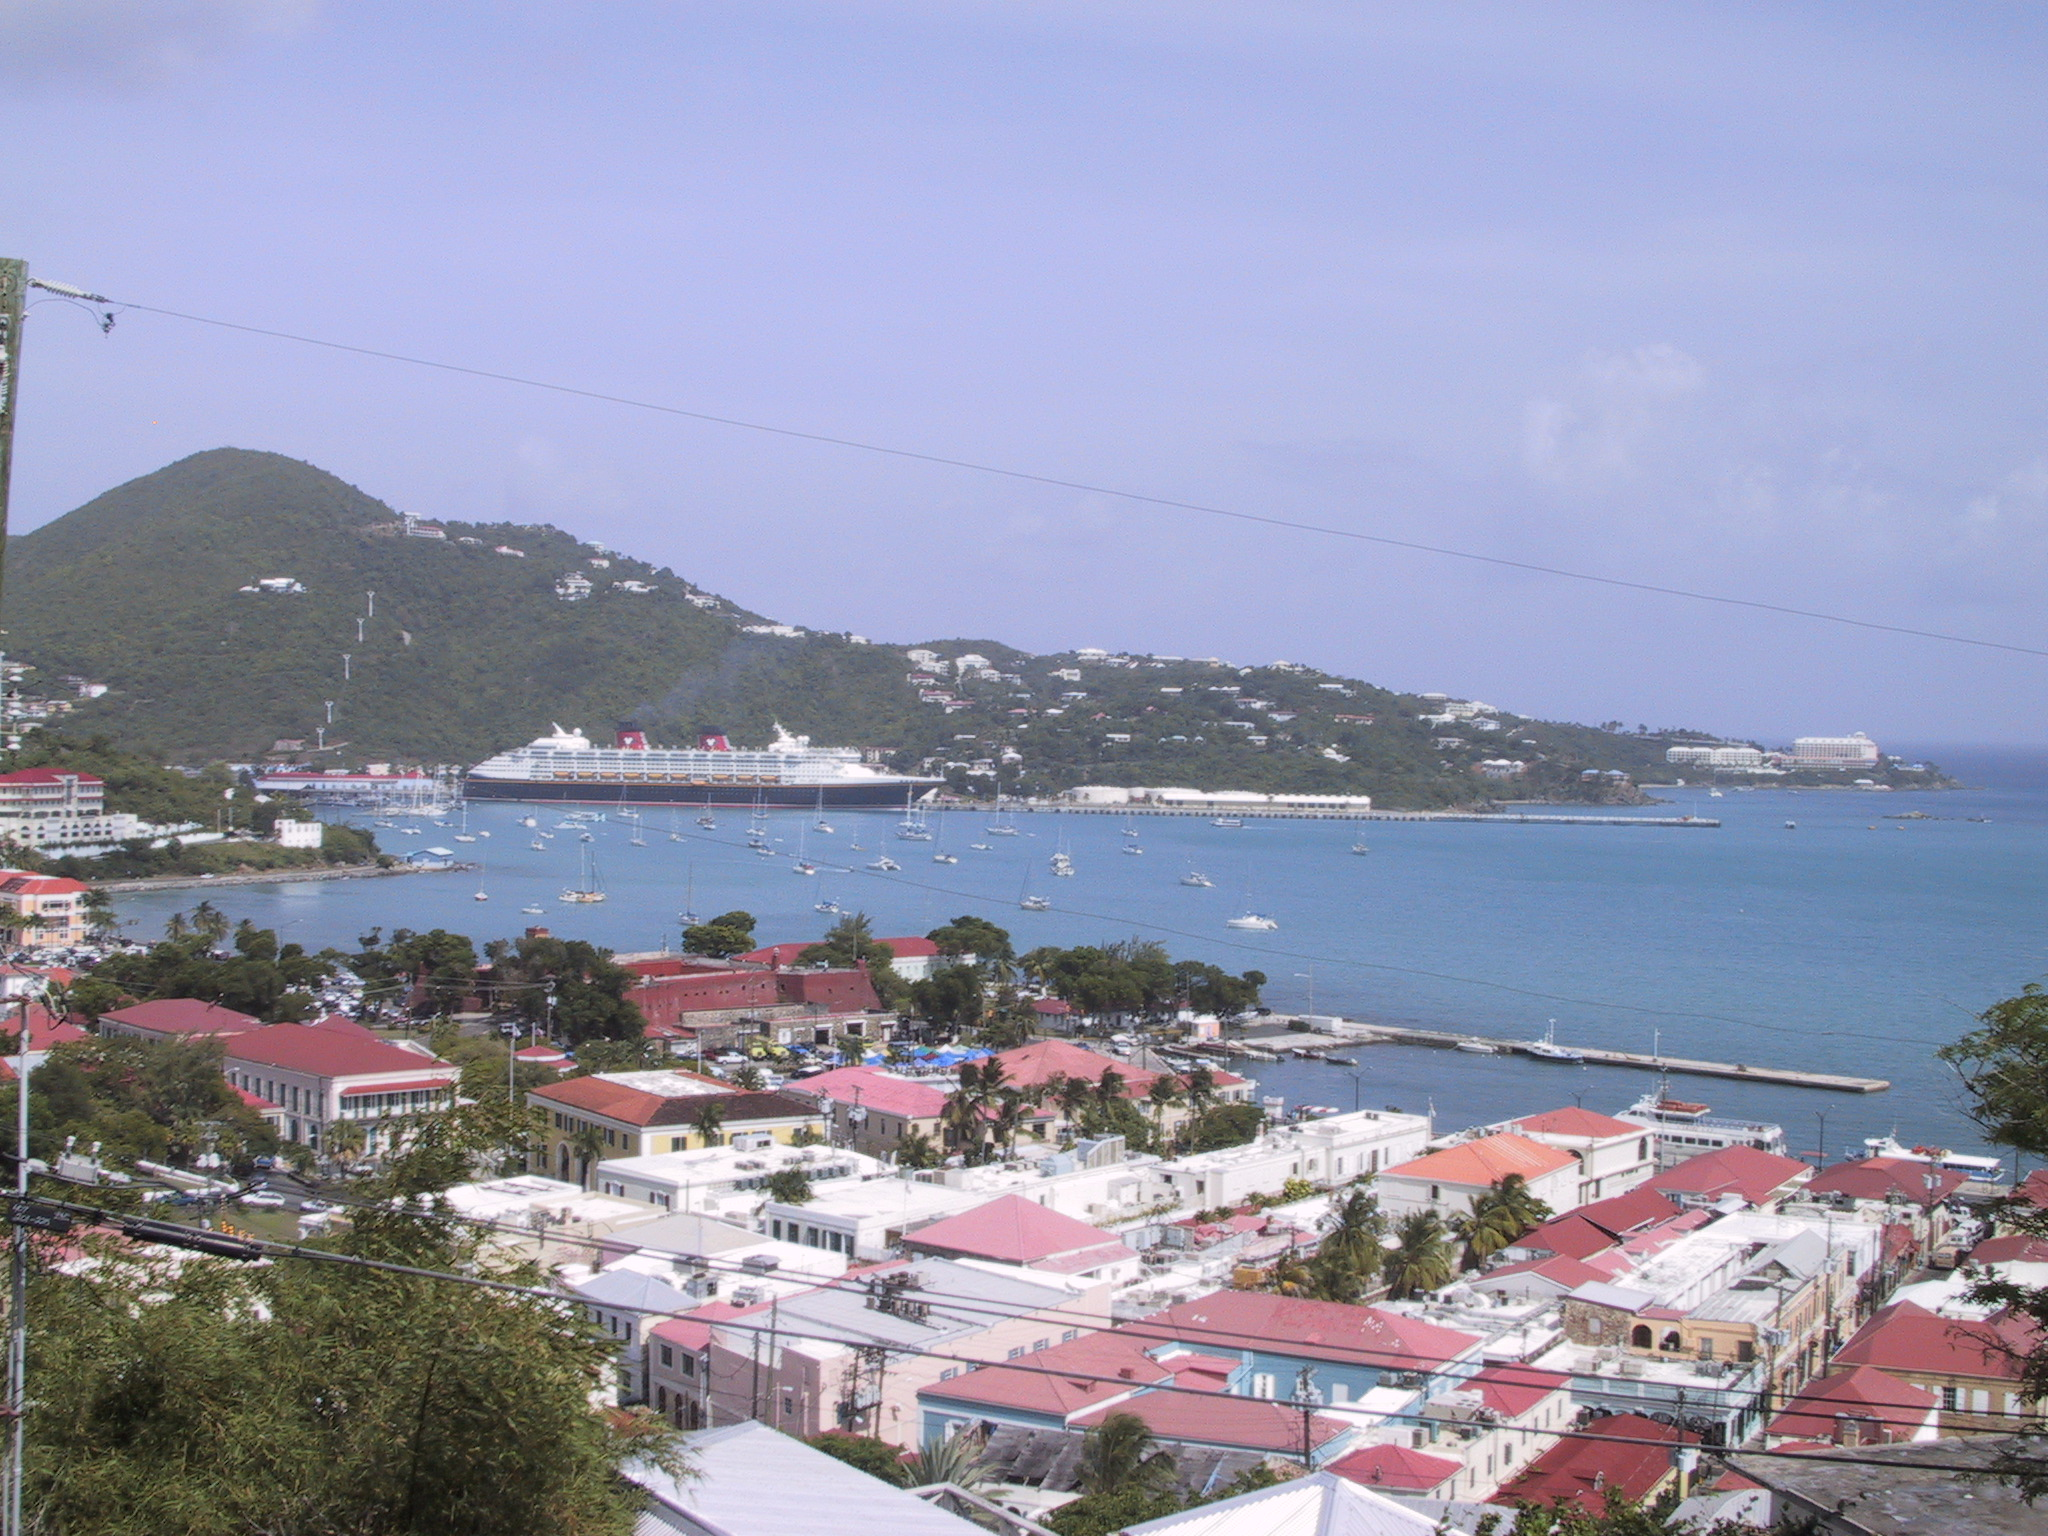 City view of Charlotte Amalie on St. Thomas in the U.S. Virgin Islands. Photo taken on June 6, 2001.